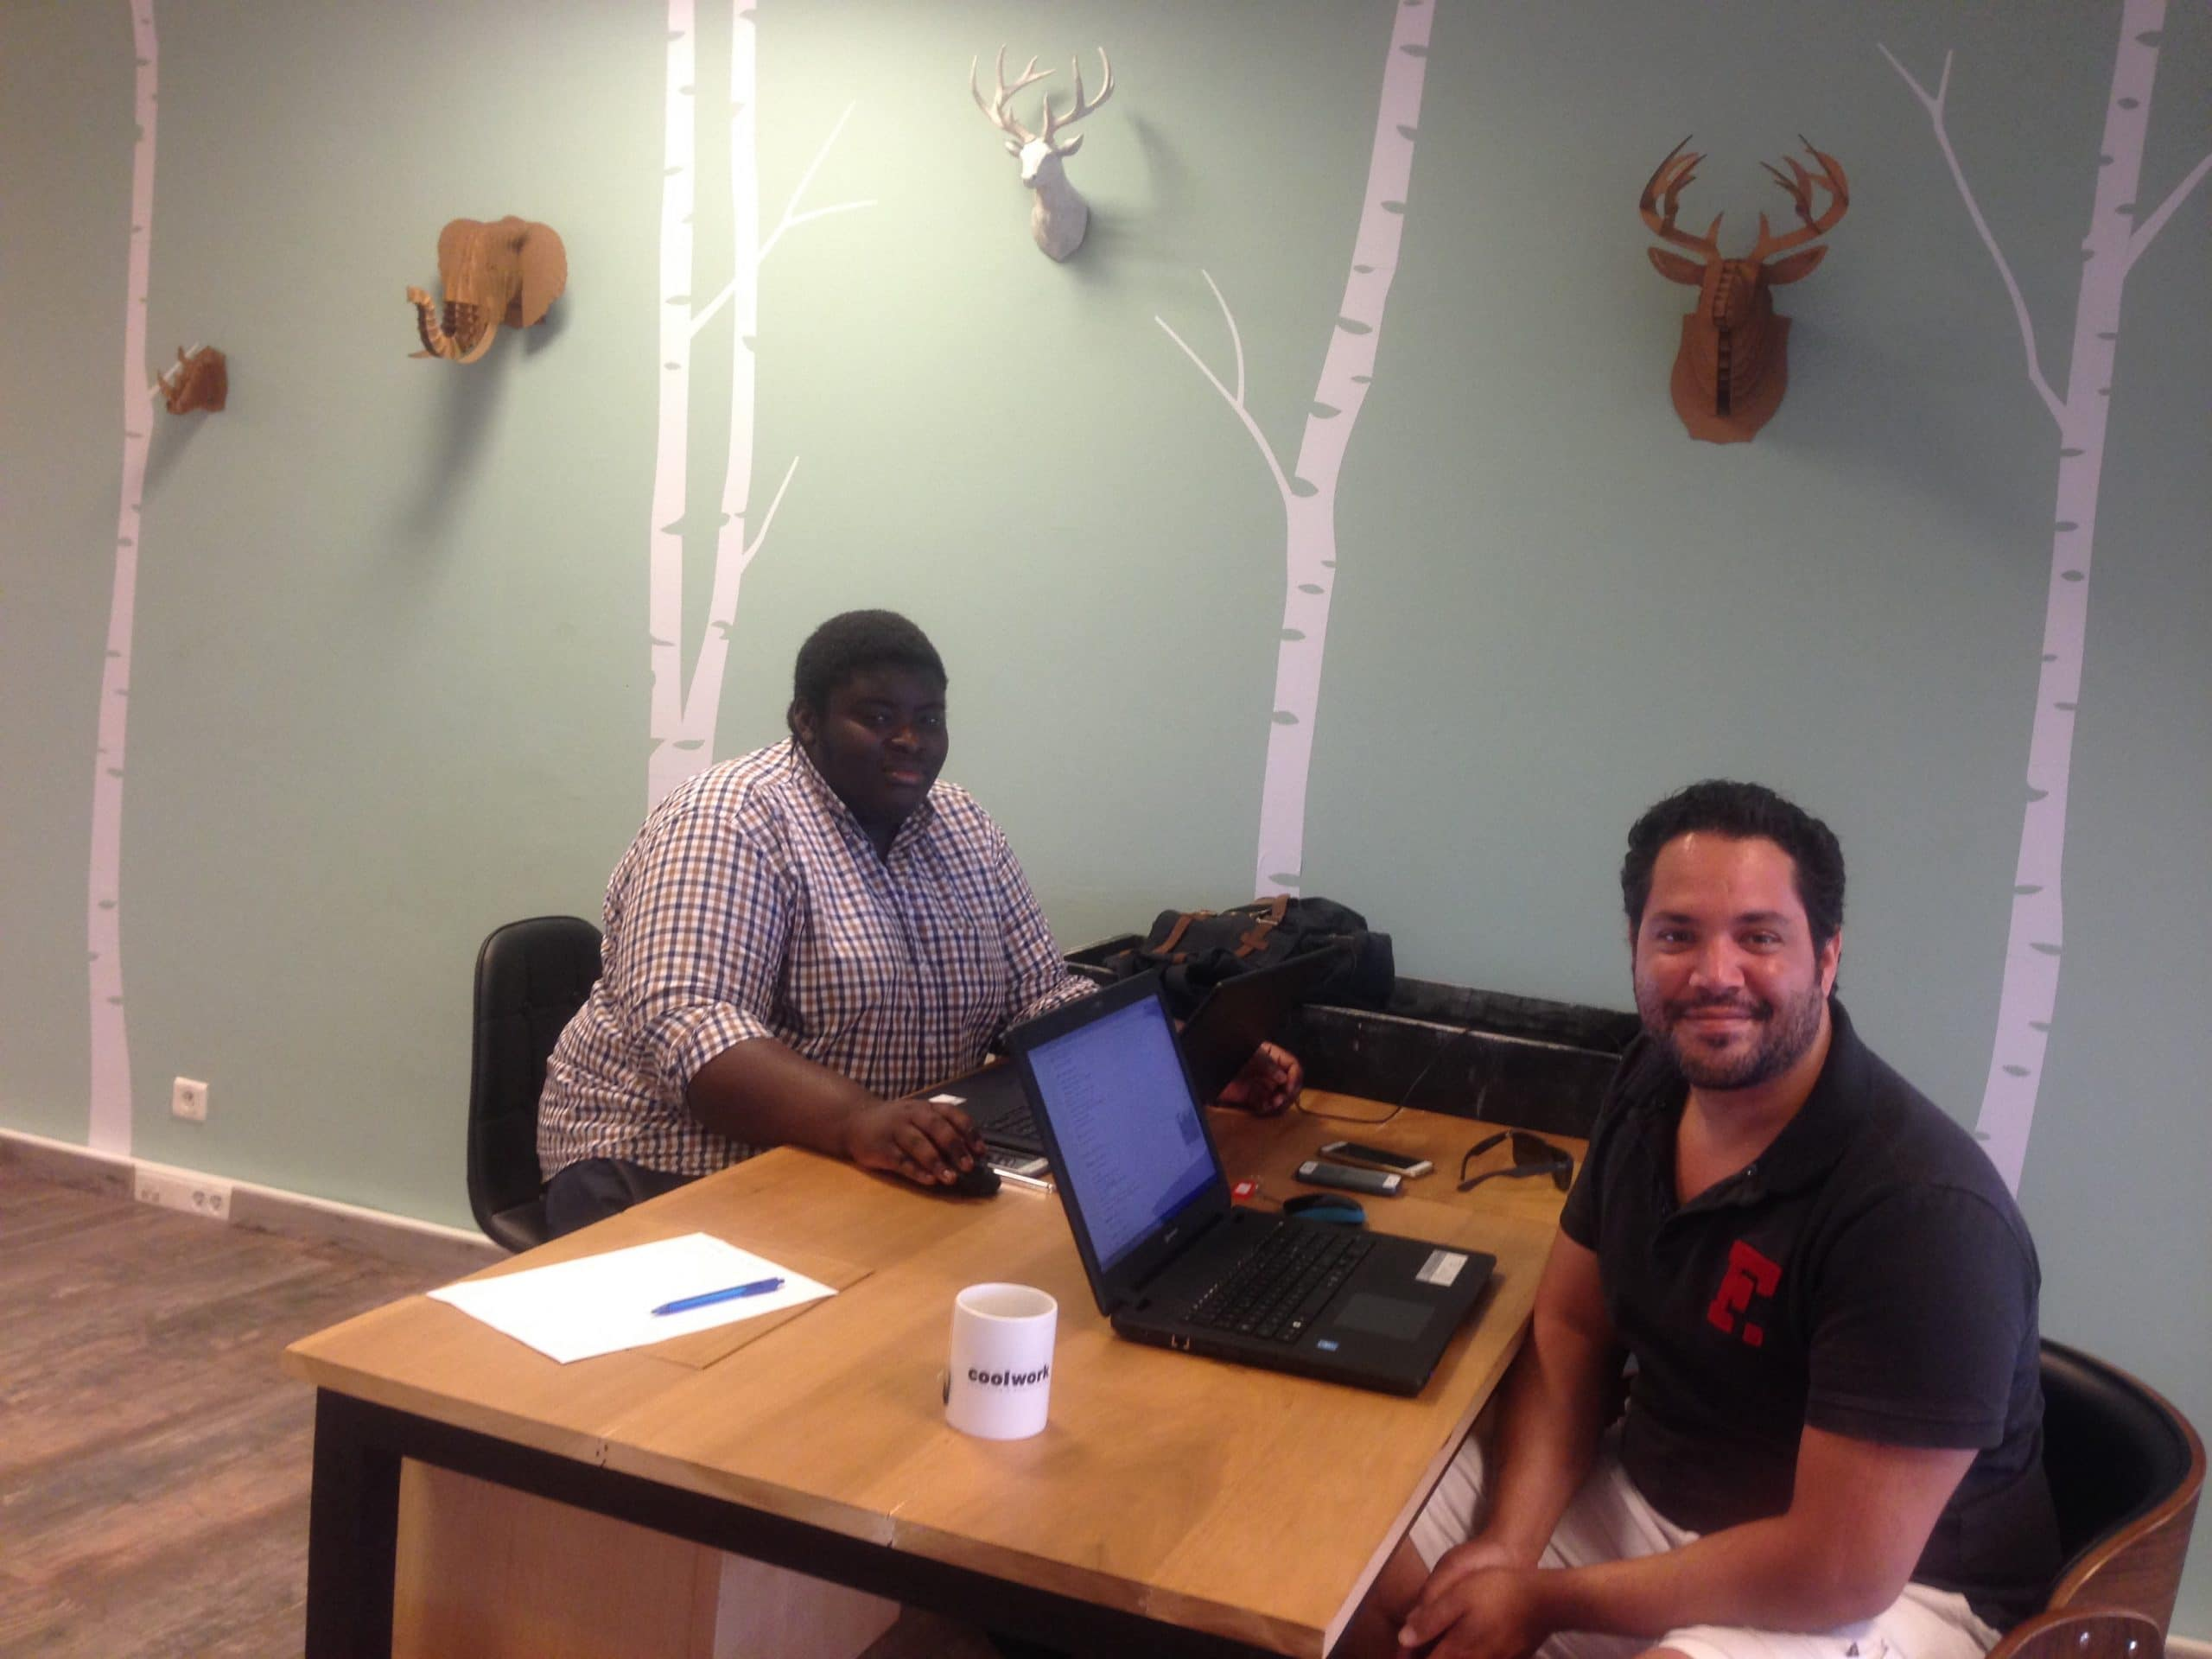 Kévin and his boss from NCP Consult